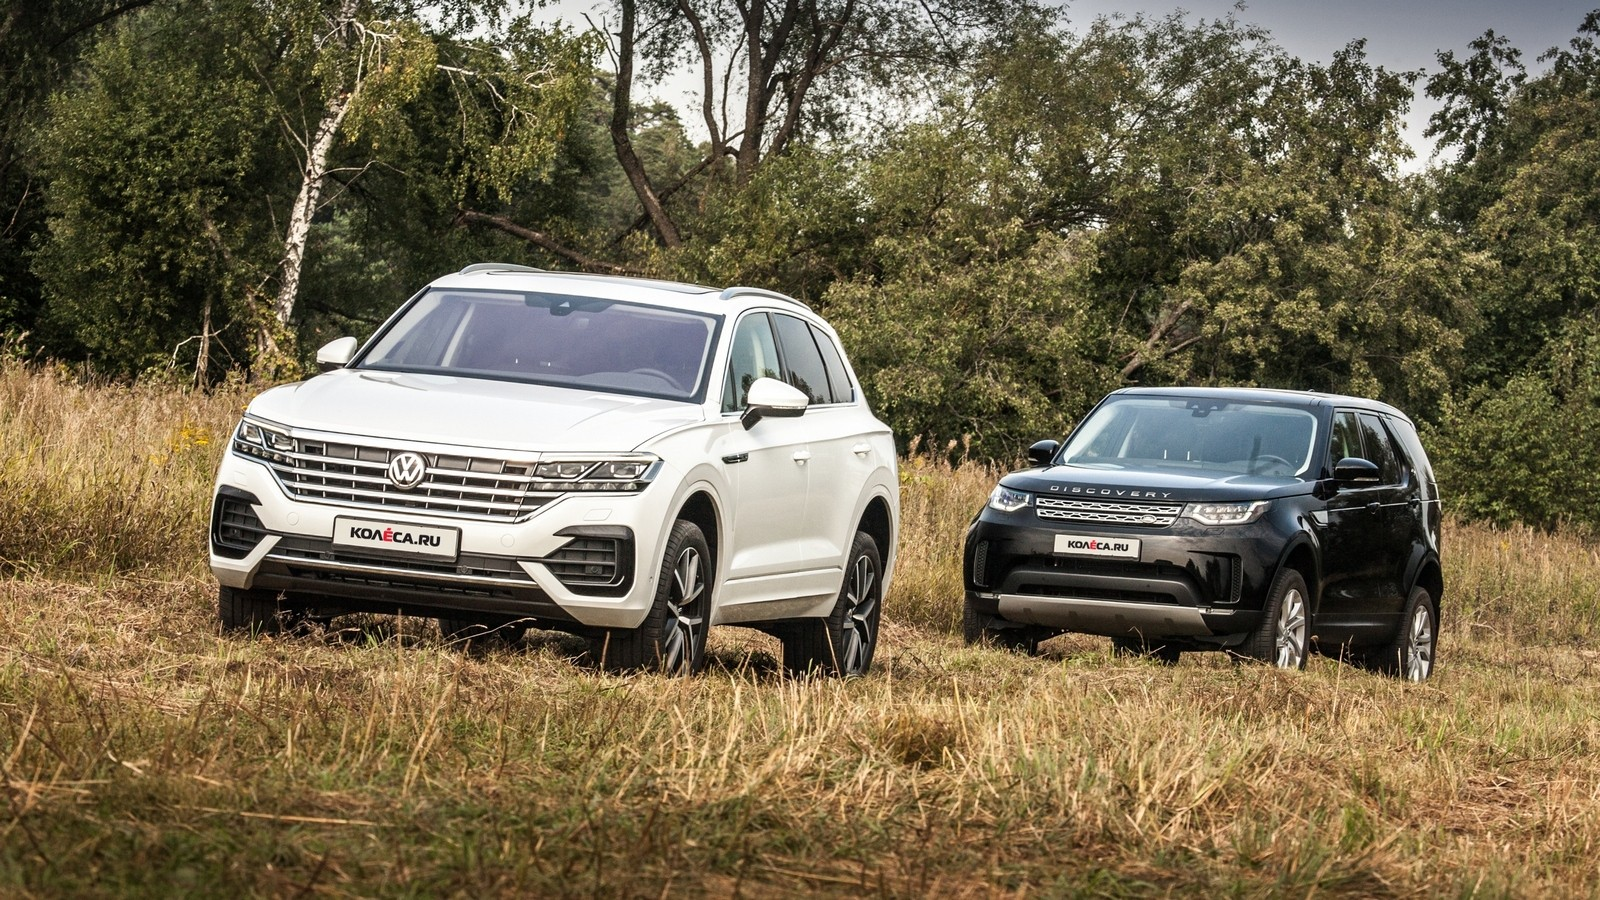 Volkswagen Touareg Land Rover Discovery (5)